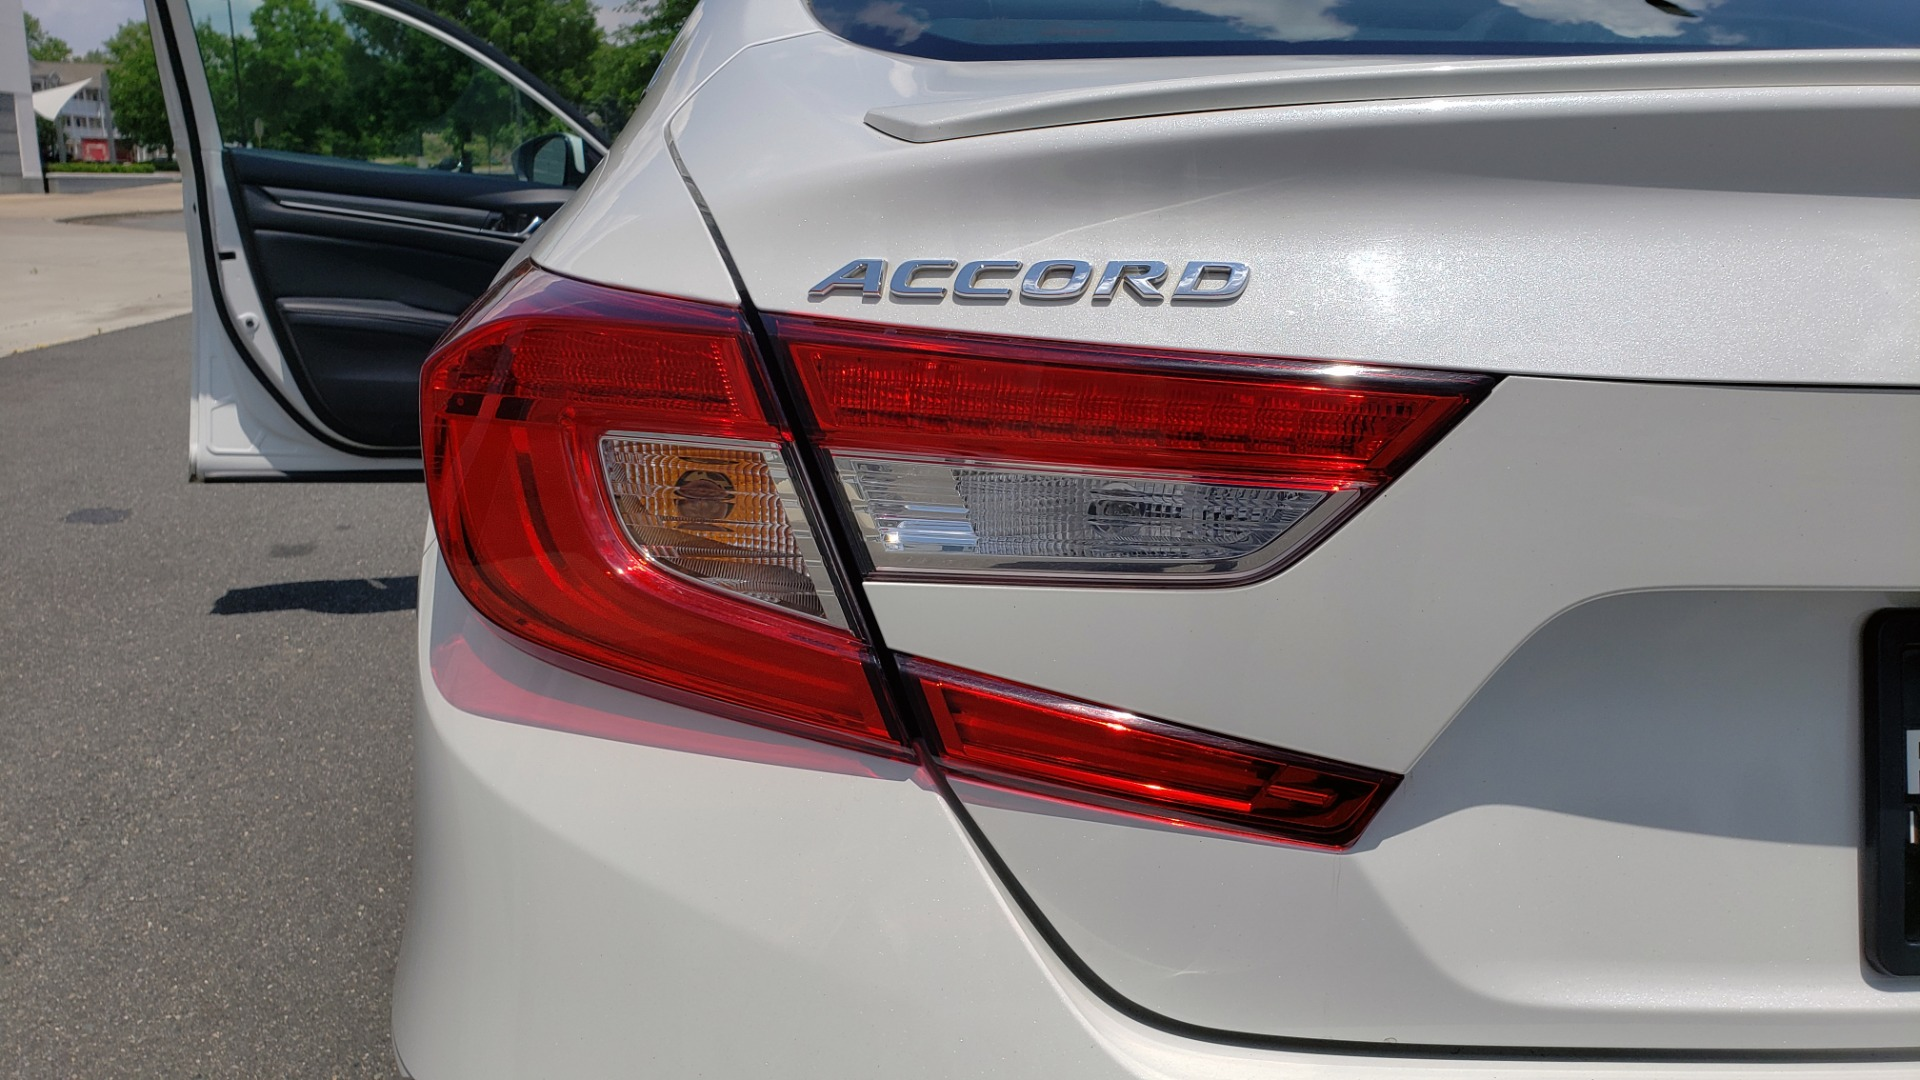 Used 2018 Honda ACCORD SEDAN SPORT 1.5T / CVT TRANS / FWD / 19IN WHEELS for sale $20,995 at Formula Imports in Charlotte NC 28227 23